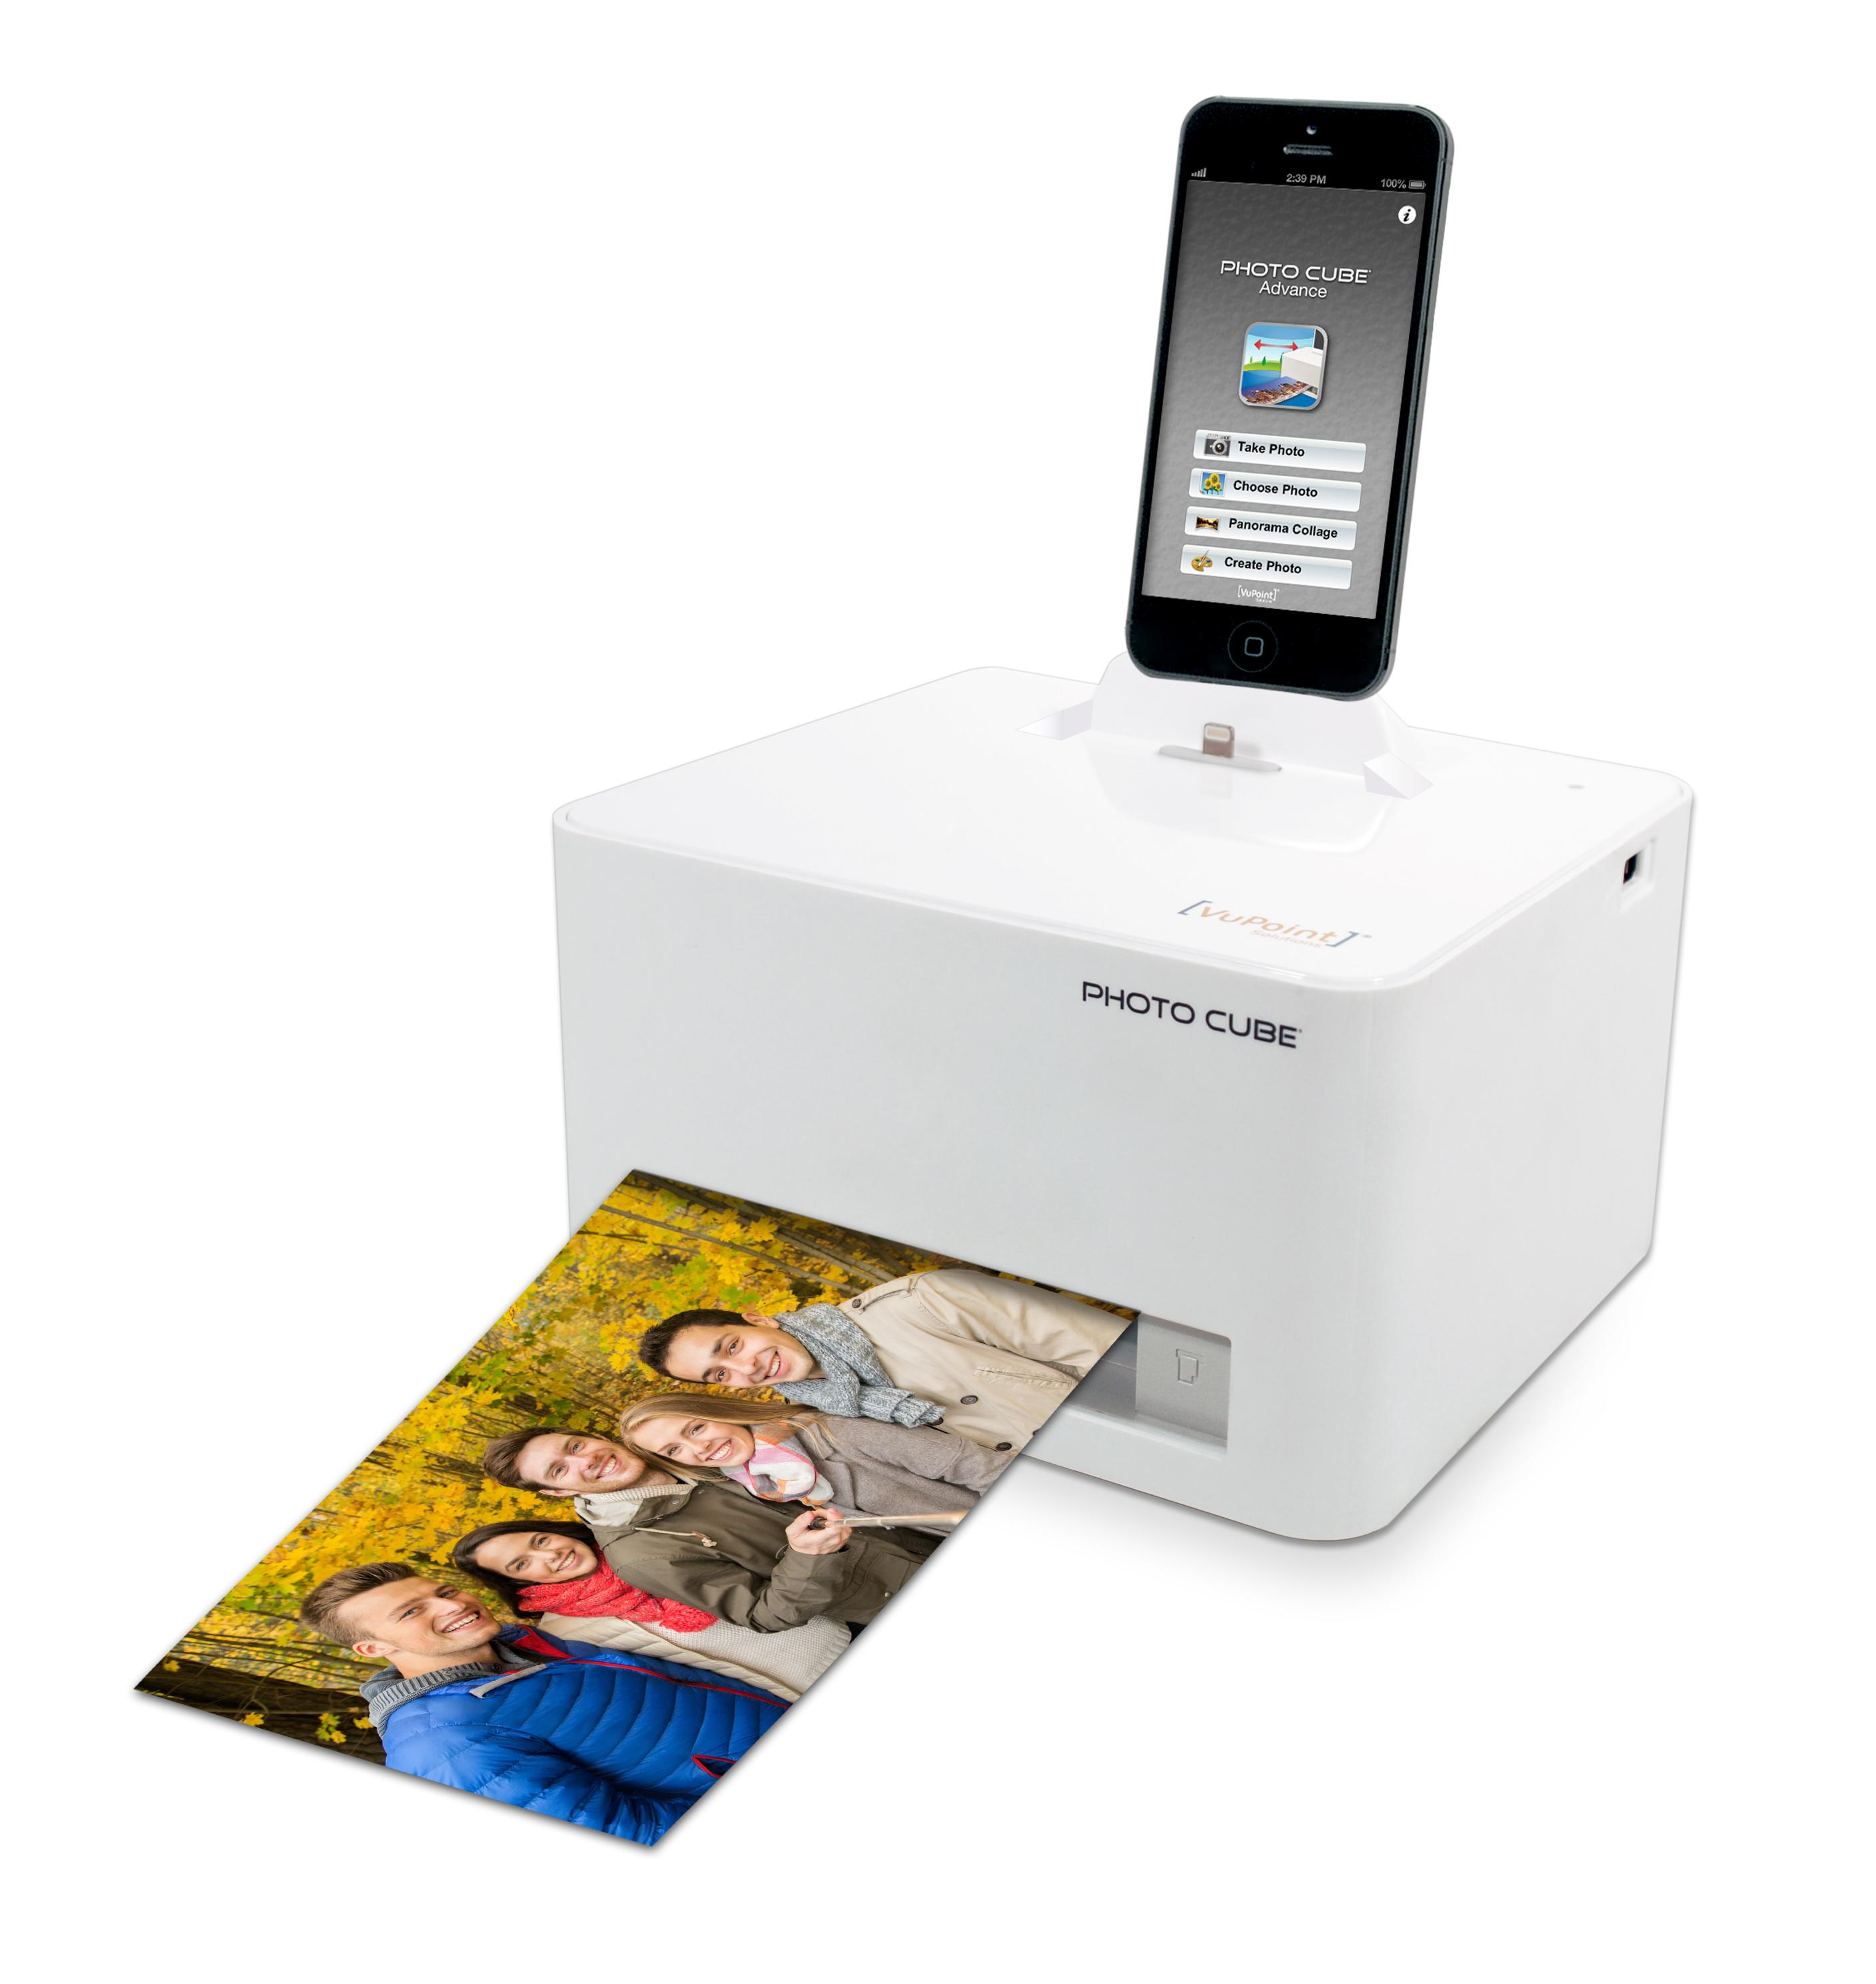 Amazoncom Vupoint Solutions Photo Cube With Lightning Connectors